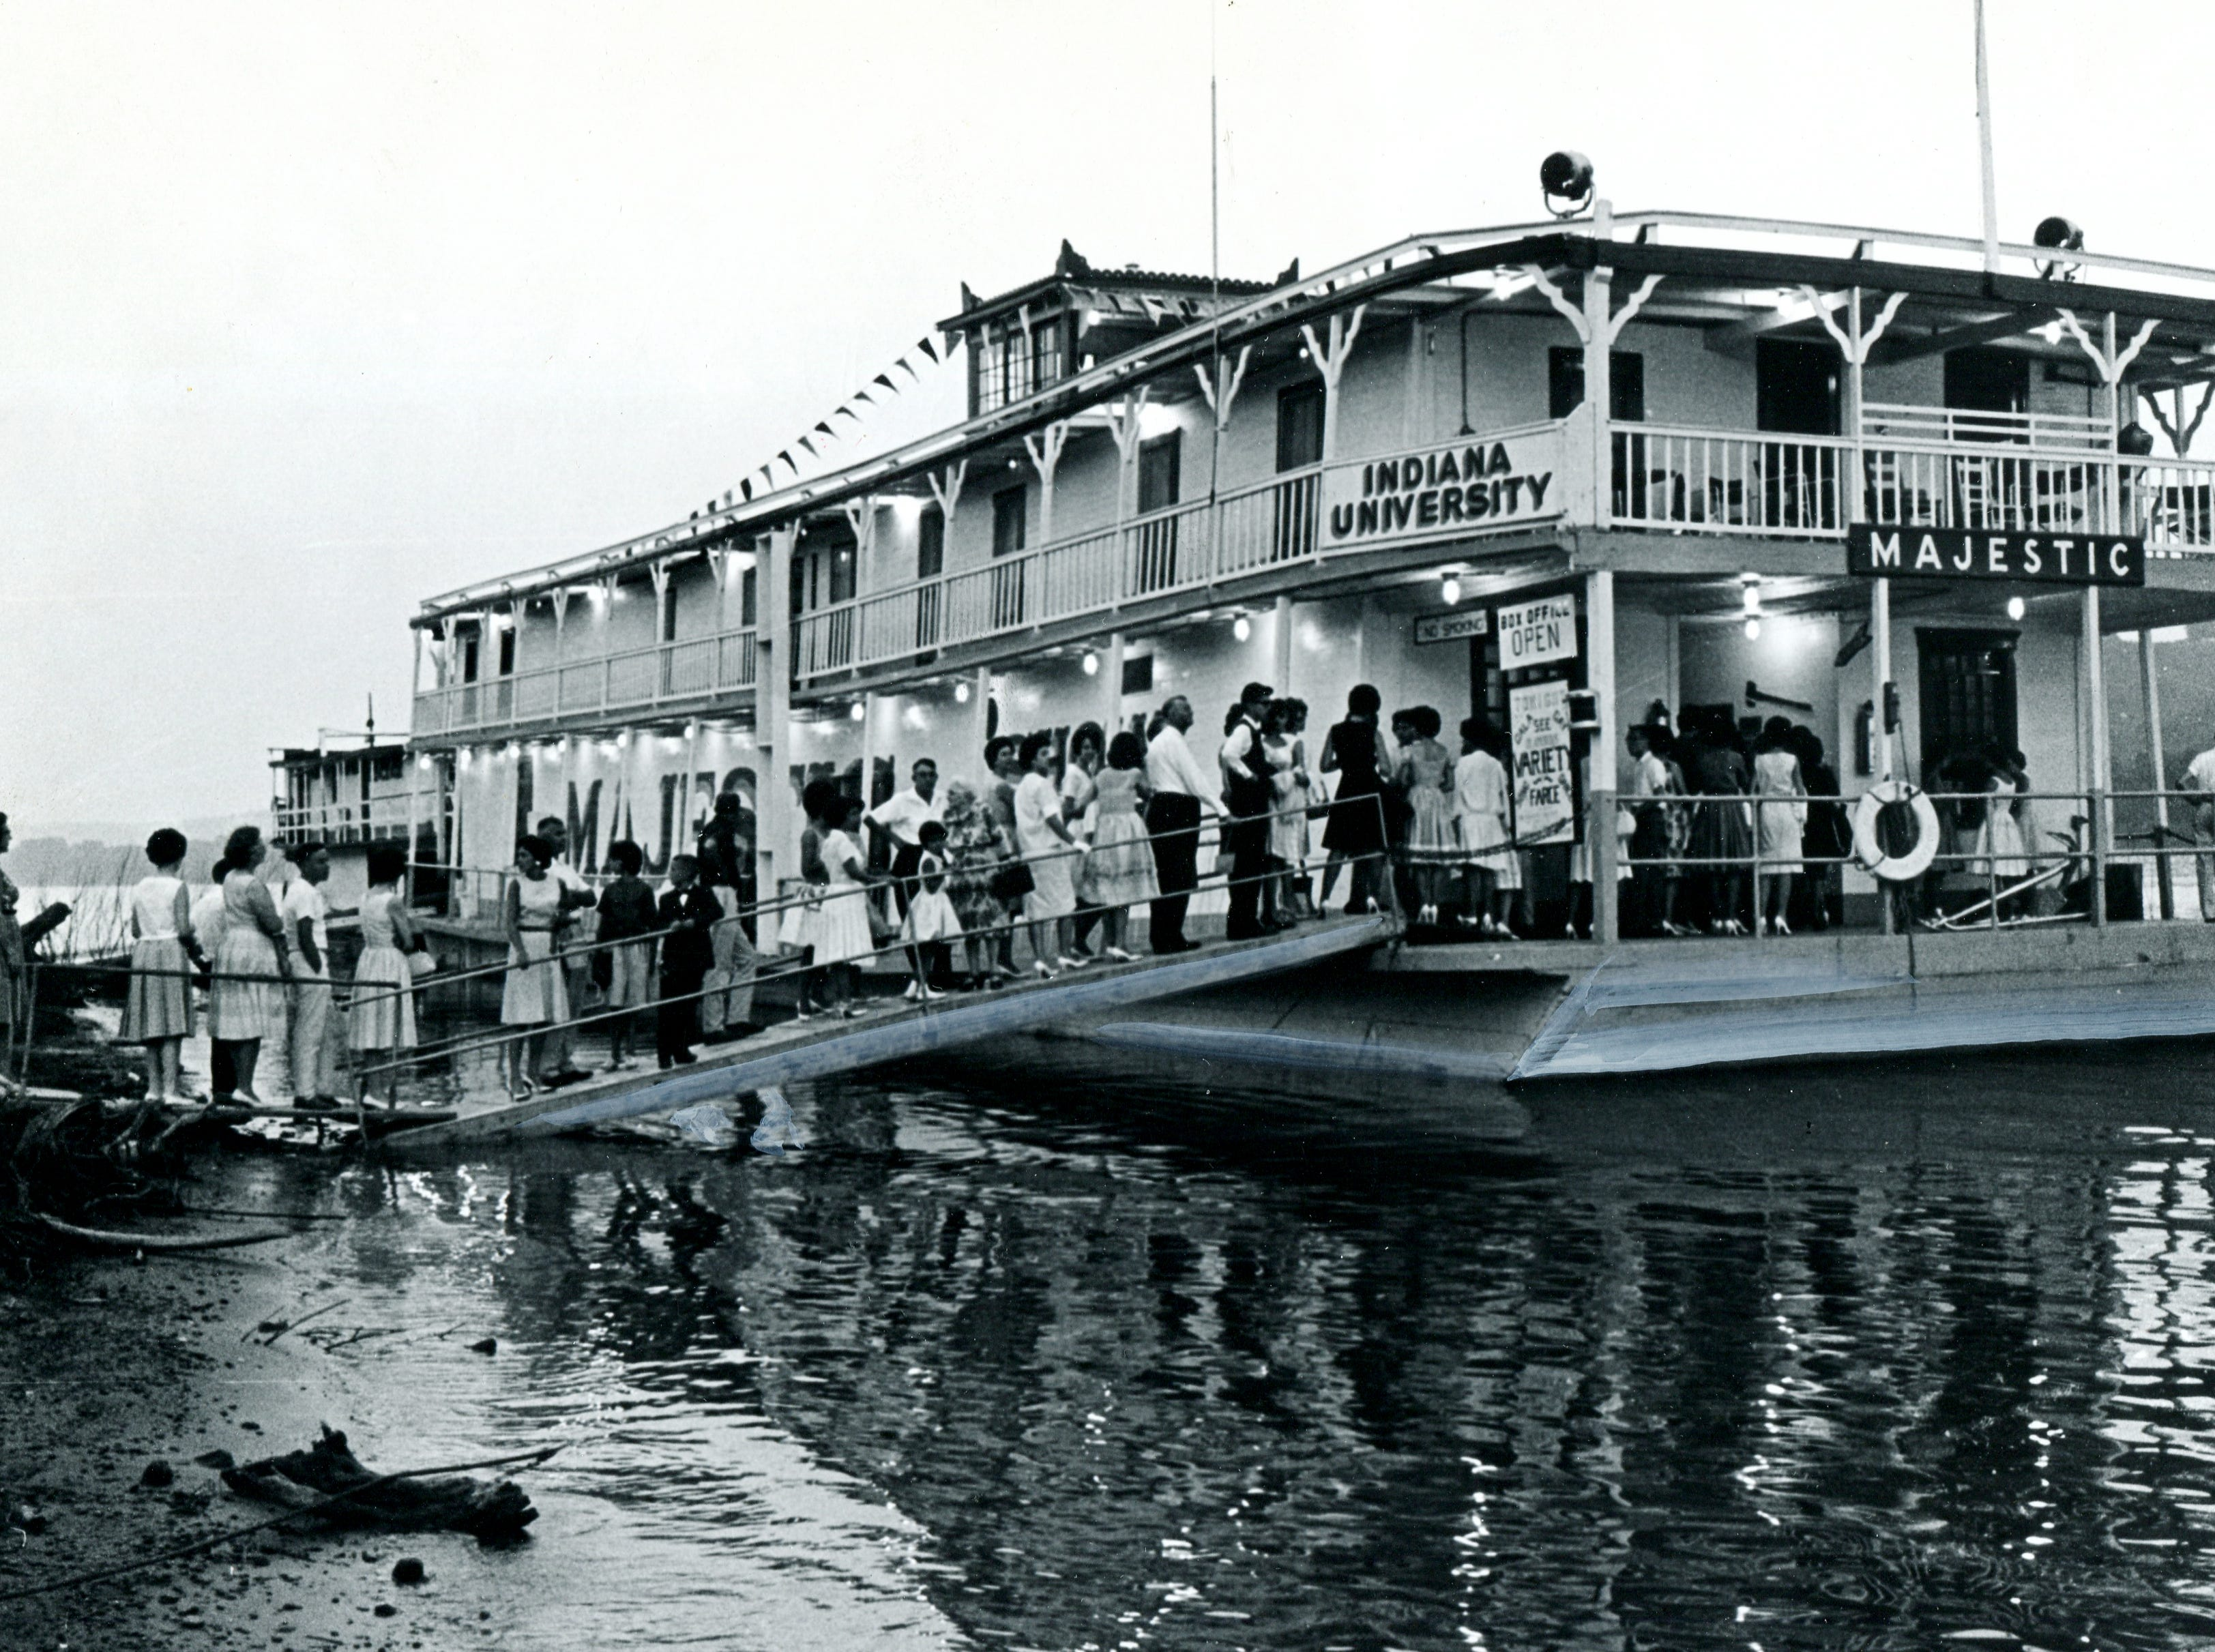 The Showboat Majestic when it was docked at Jeffersonville, Indiana. The showboat was purchased by the City of Cincinnati from Indiana University in 1967.